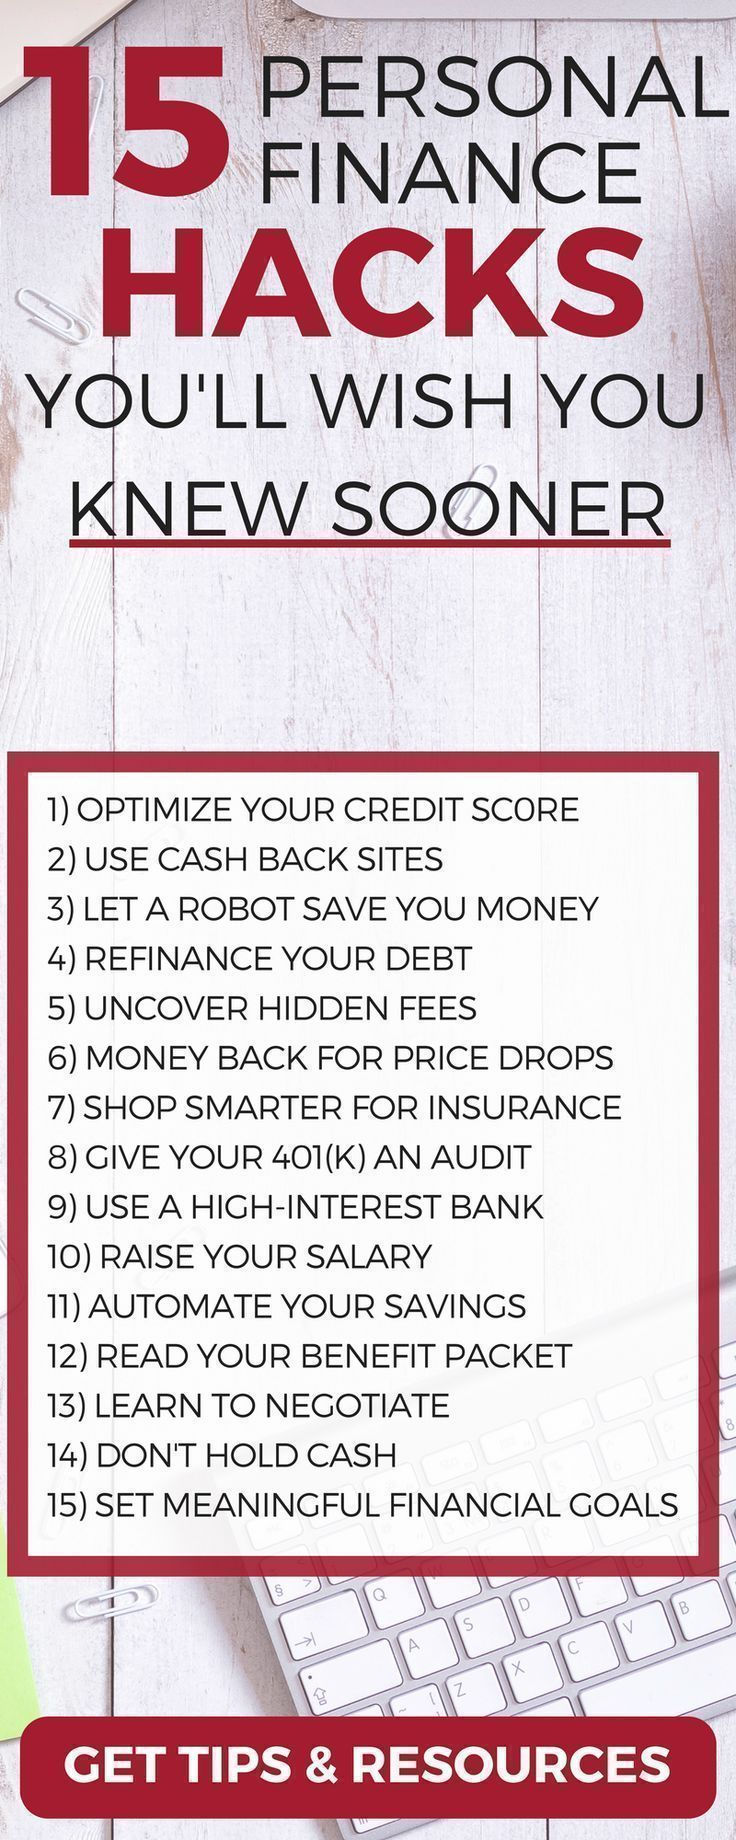 Discover 15 personal finance hacks to save and make more money (you'll wish you knew sooner) life hacks   money management tips   personal finance tips   personal finance lessons   personal finance organization #MONEYMANAGEMENT #PERSONALFINANCE #MONEYTIPS #BUDGET